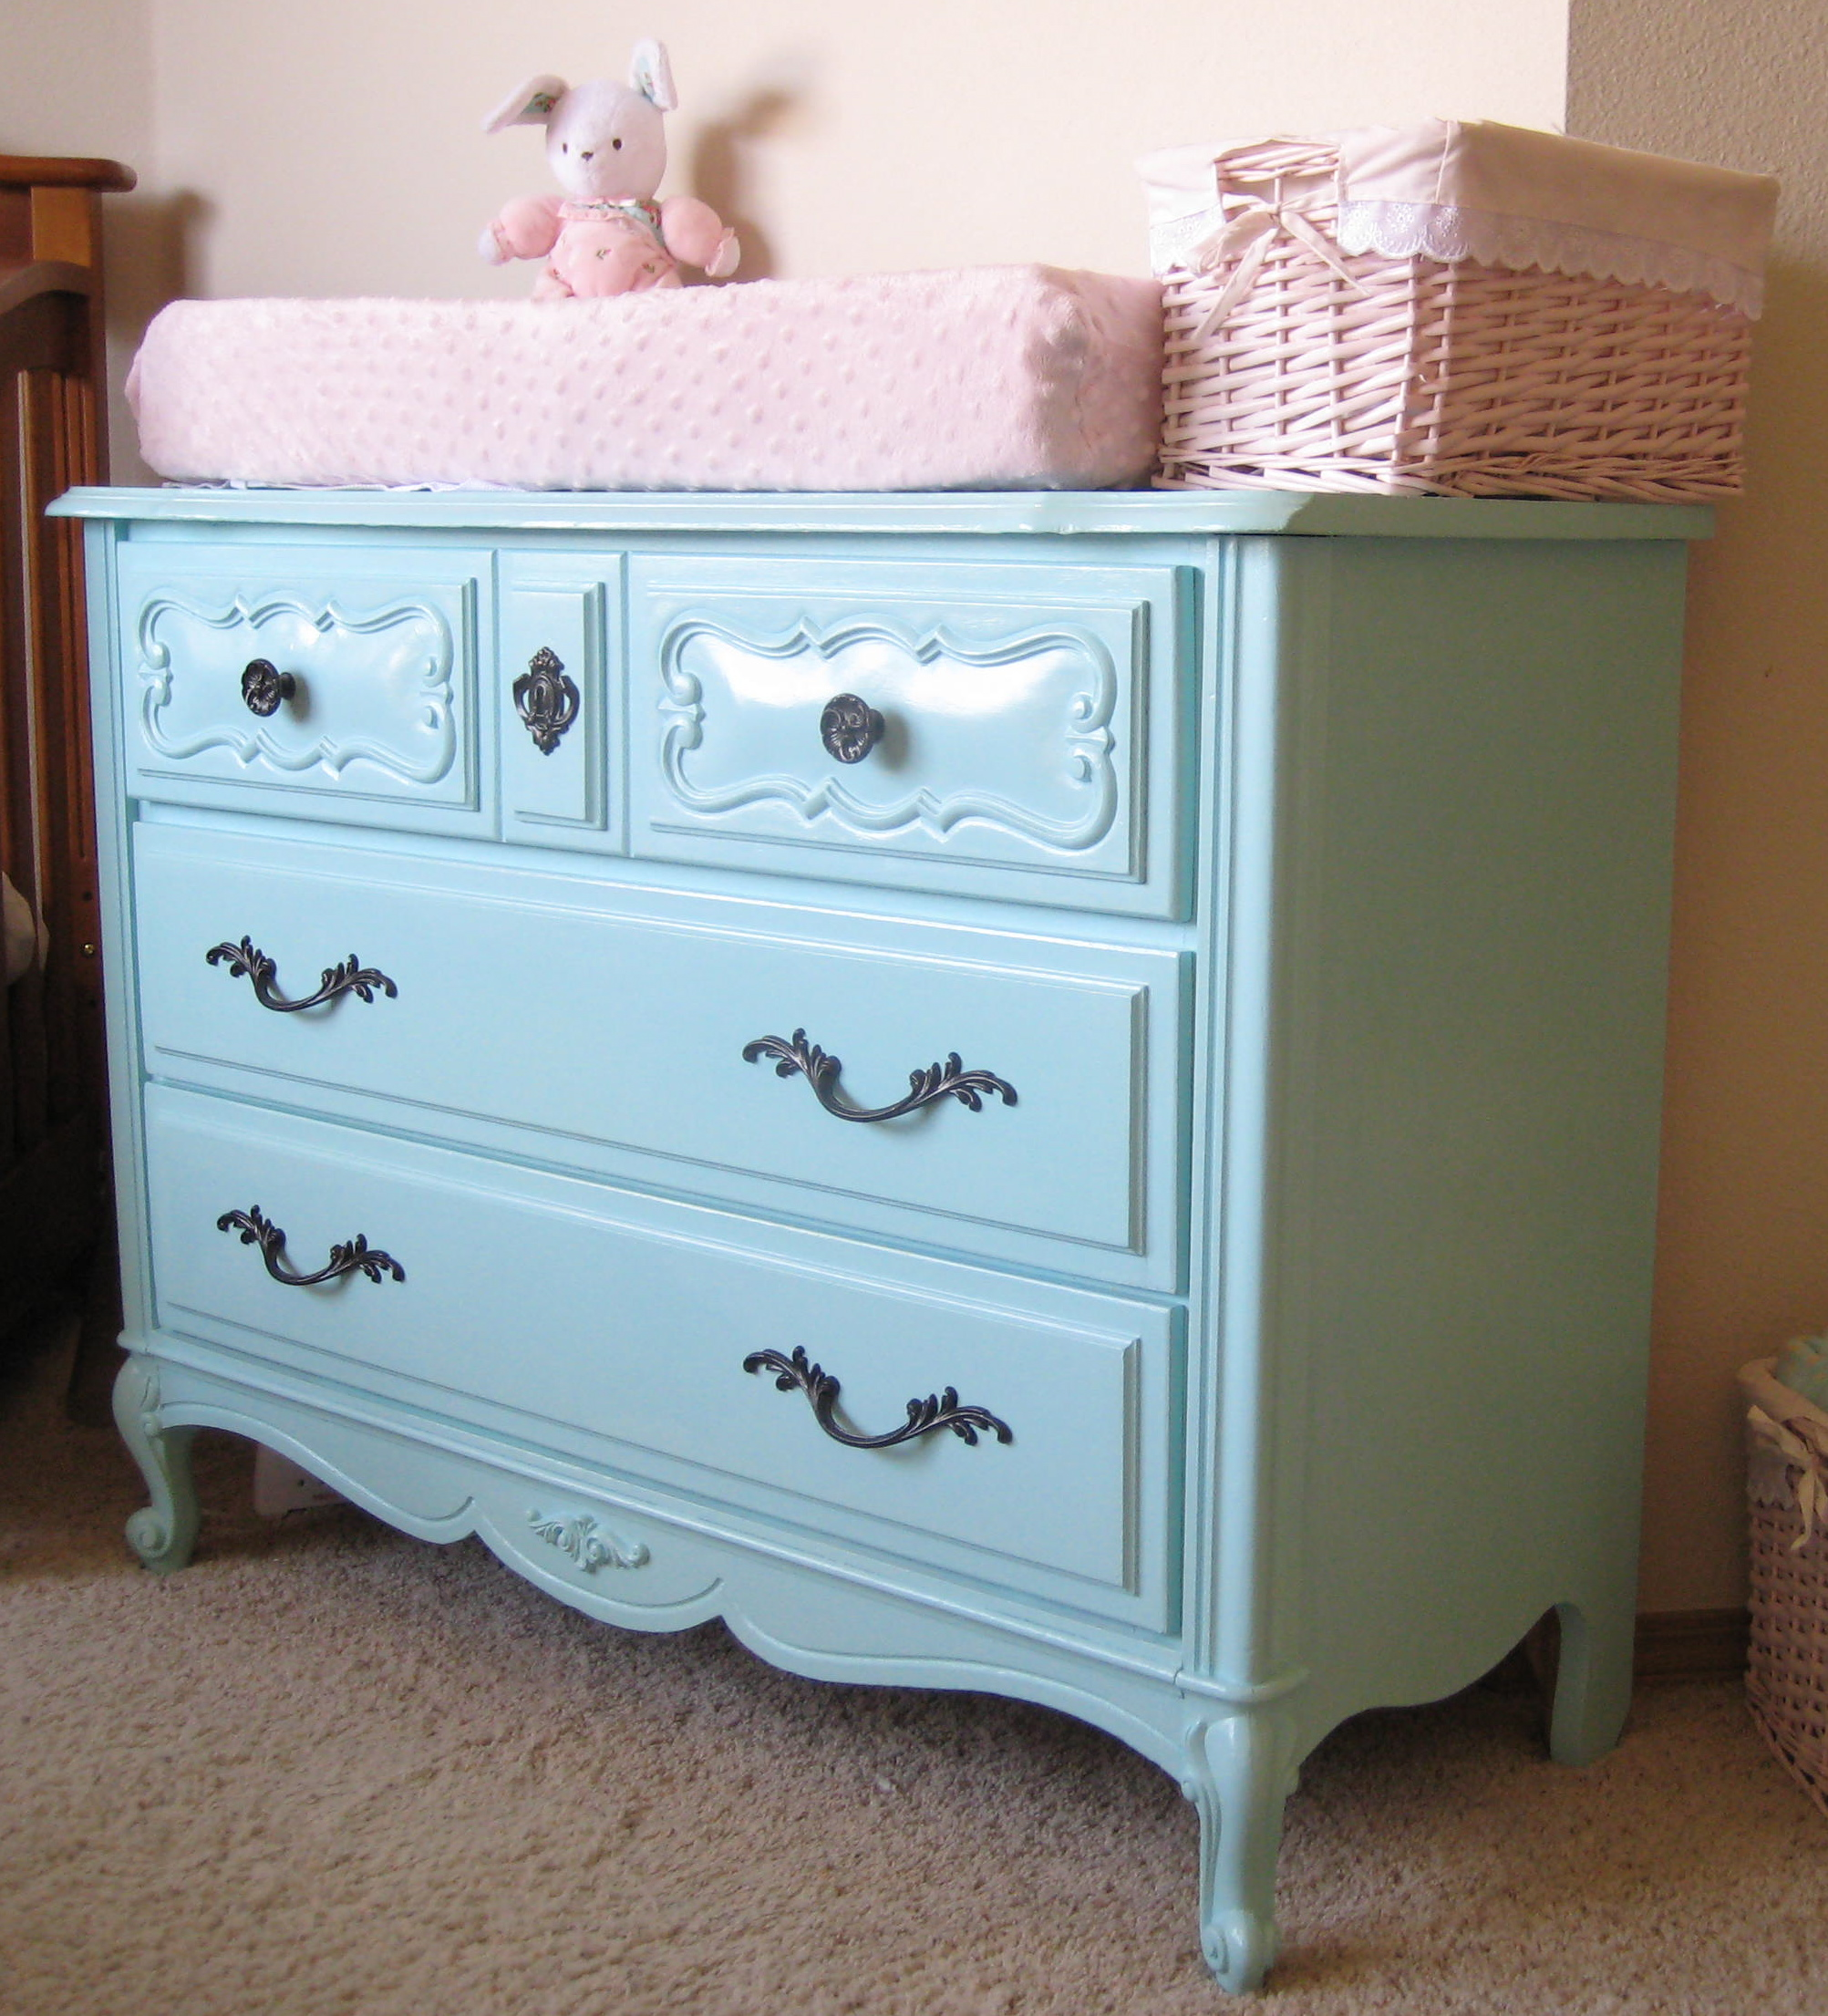 French Provincial Dresser Craigslist Images Galleries With A Bite